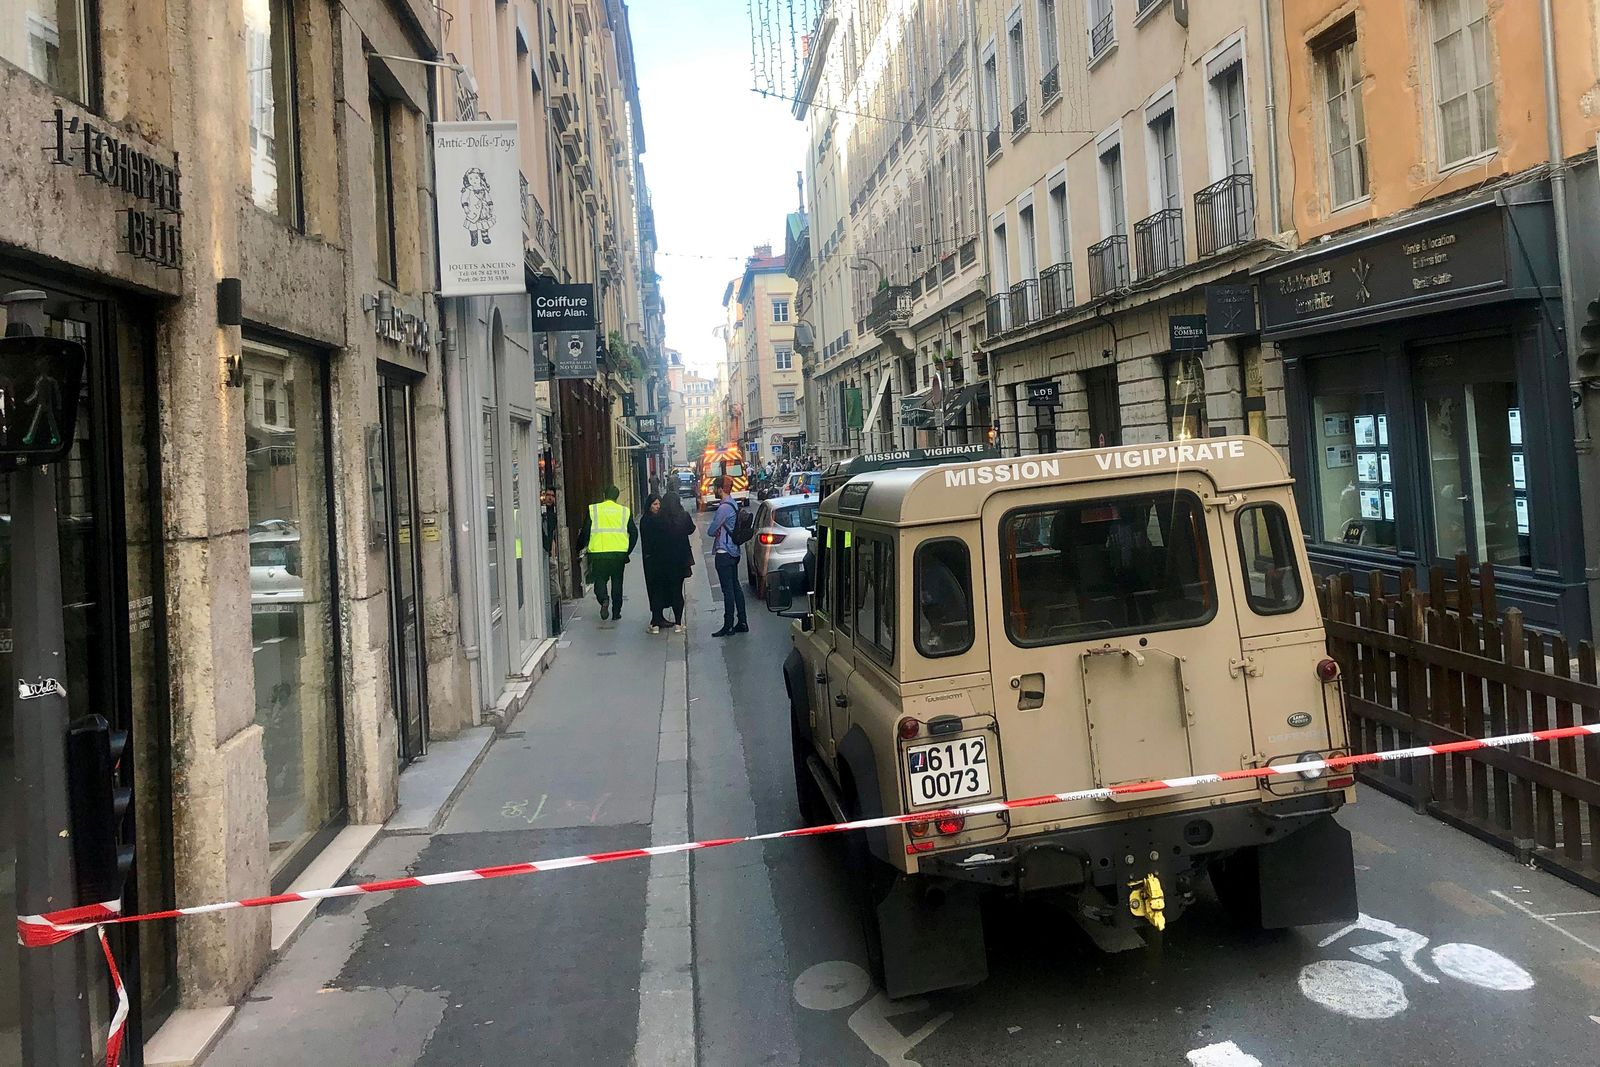 "A vehicle of French anti terrorist plan ""Vigipirate Mission"", is seen near the site of a suspected bomb attack in central Lyon, Friday May, 24, 2019. A small explosion Friday on a busy street in the French city of Lyon lightly injured several people, local officials said. (AP Photo/Sebastien Erome)"